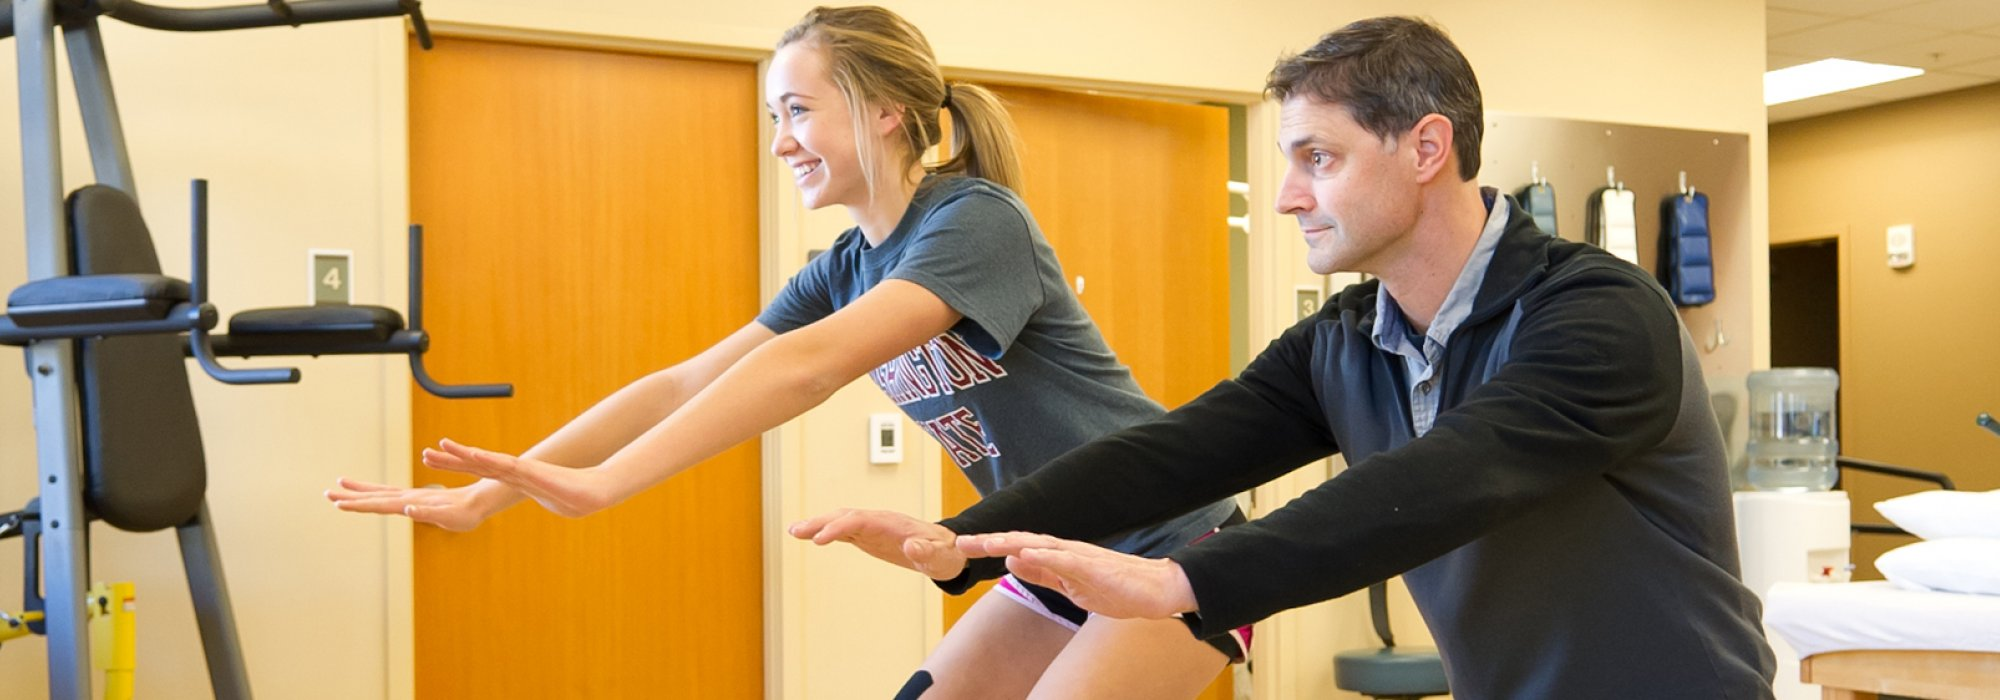 Physical Therapist Chris Allen works with Makenna, a high school athlete.